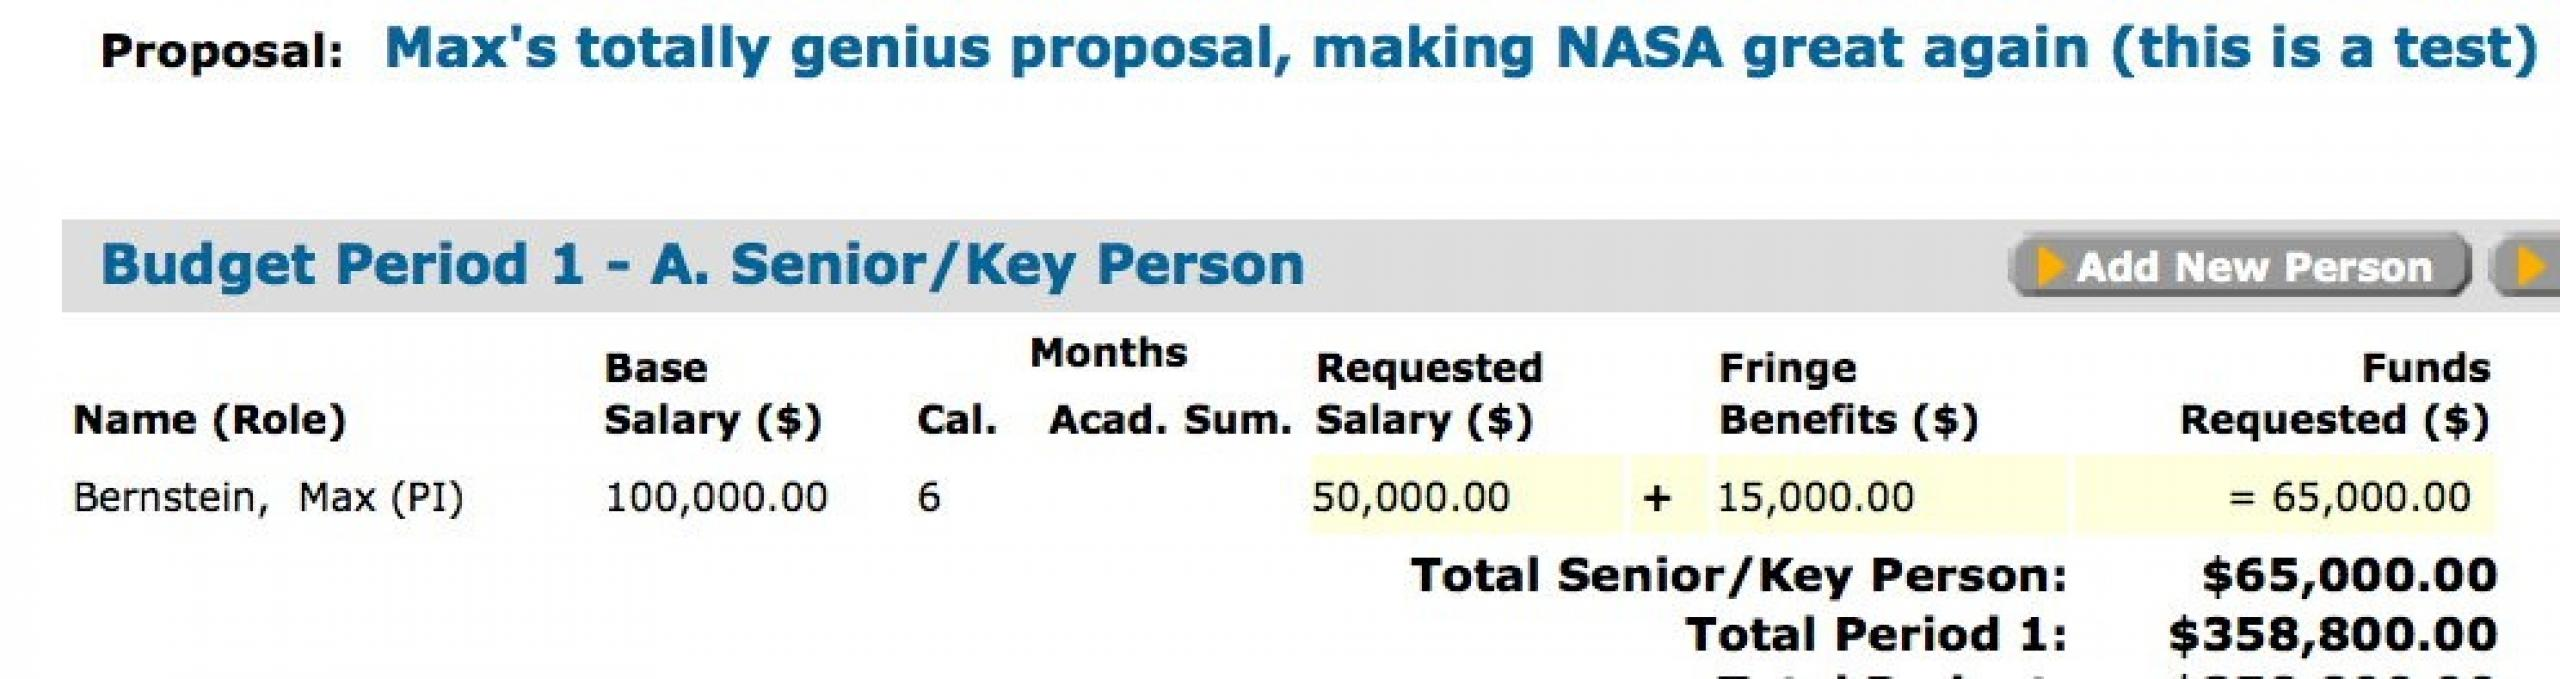 Salaries, Overhead, and ROSES Proposal Budgets | Science Mission ...